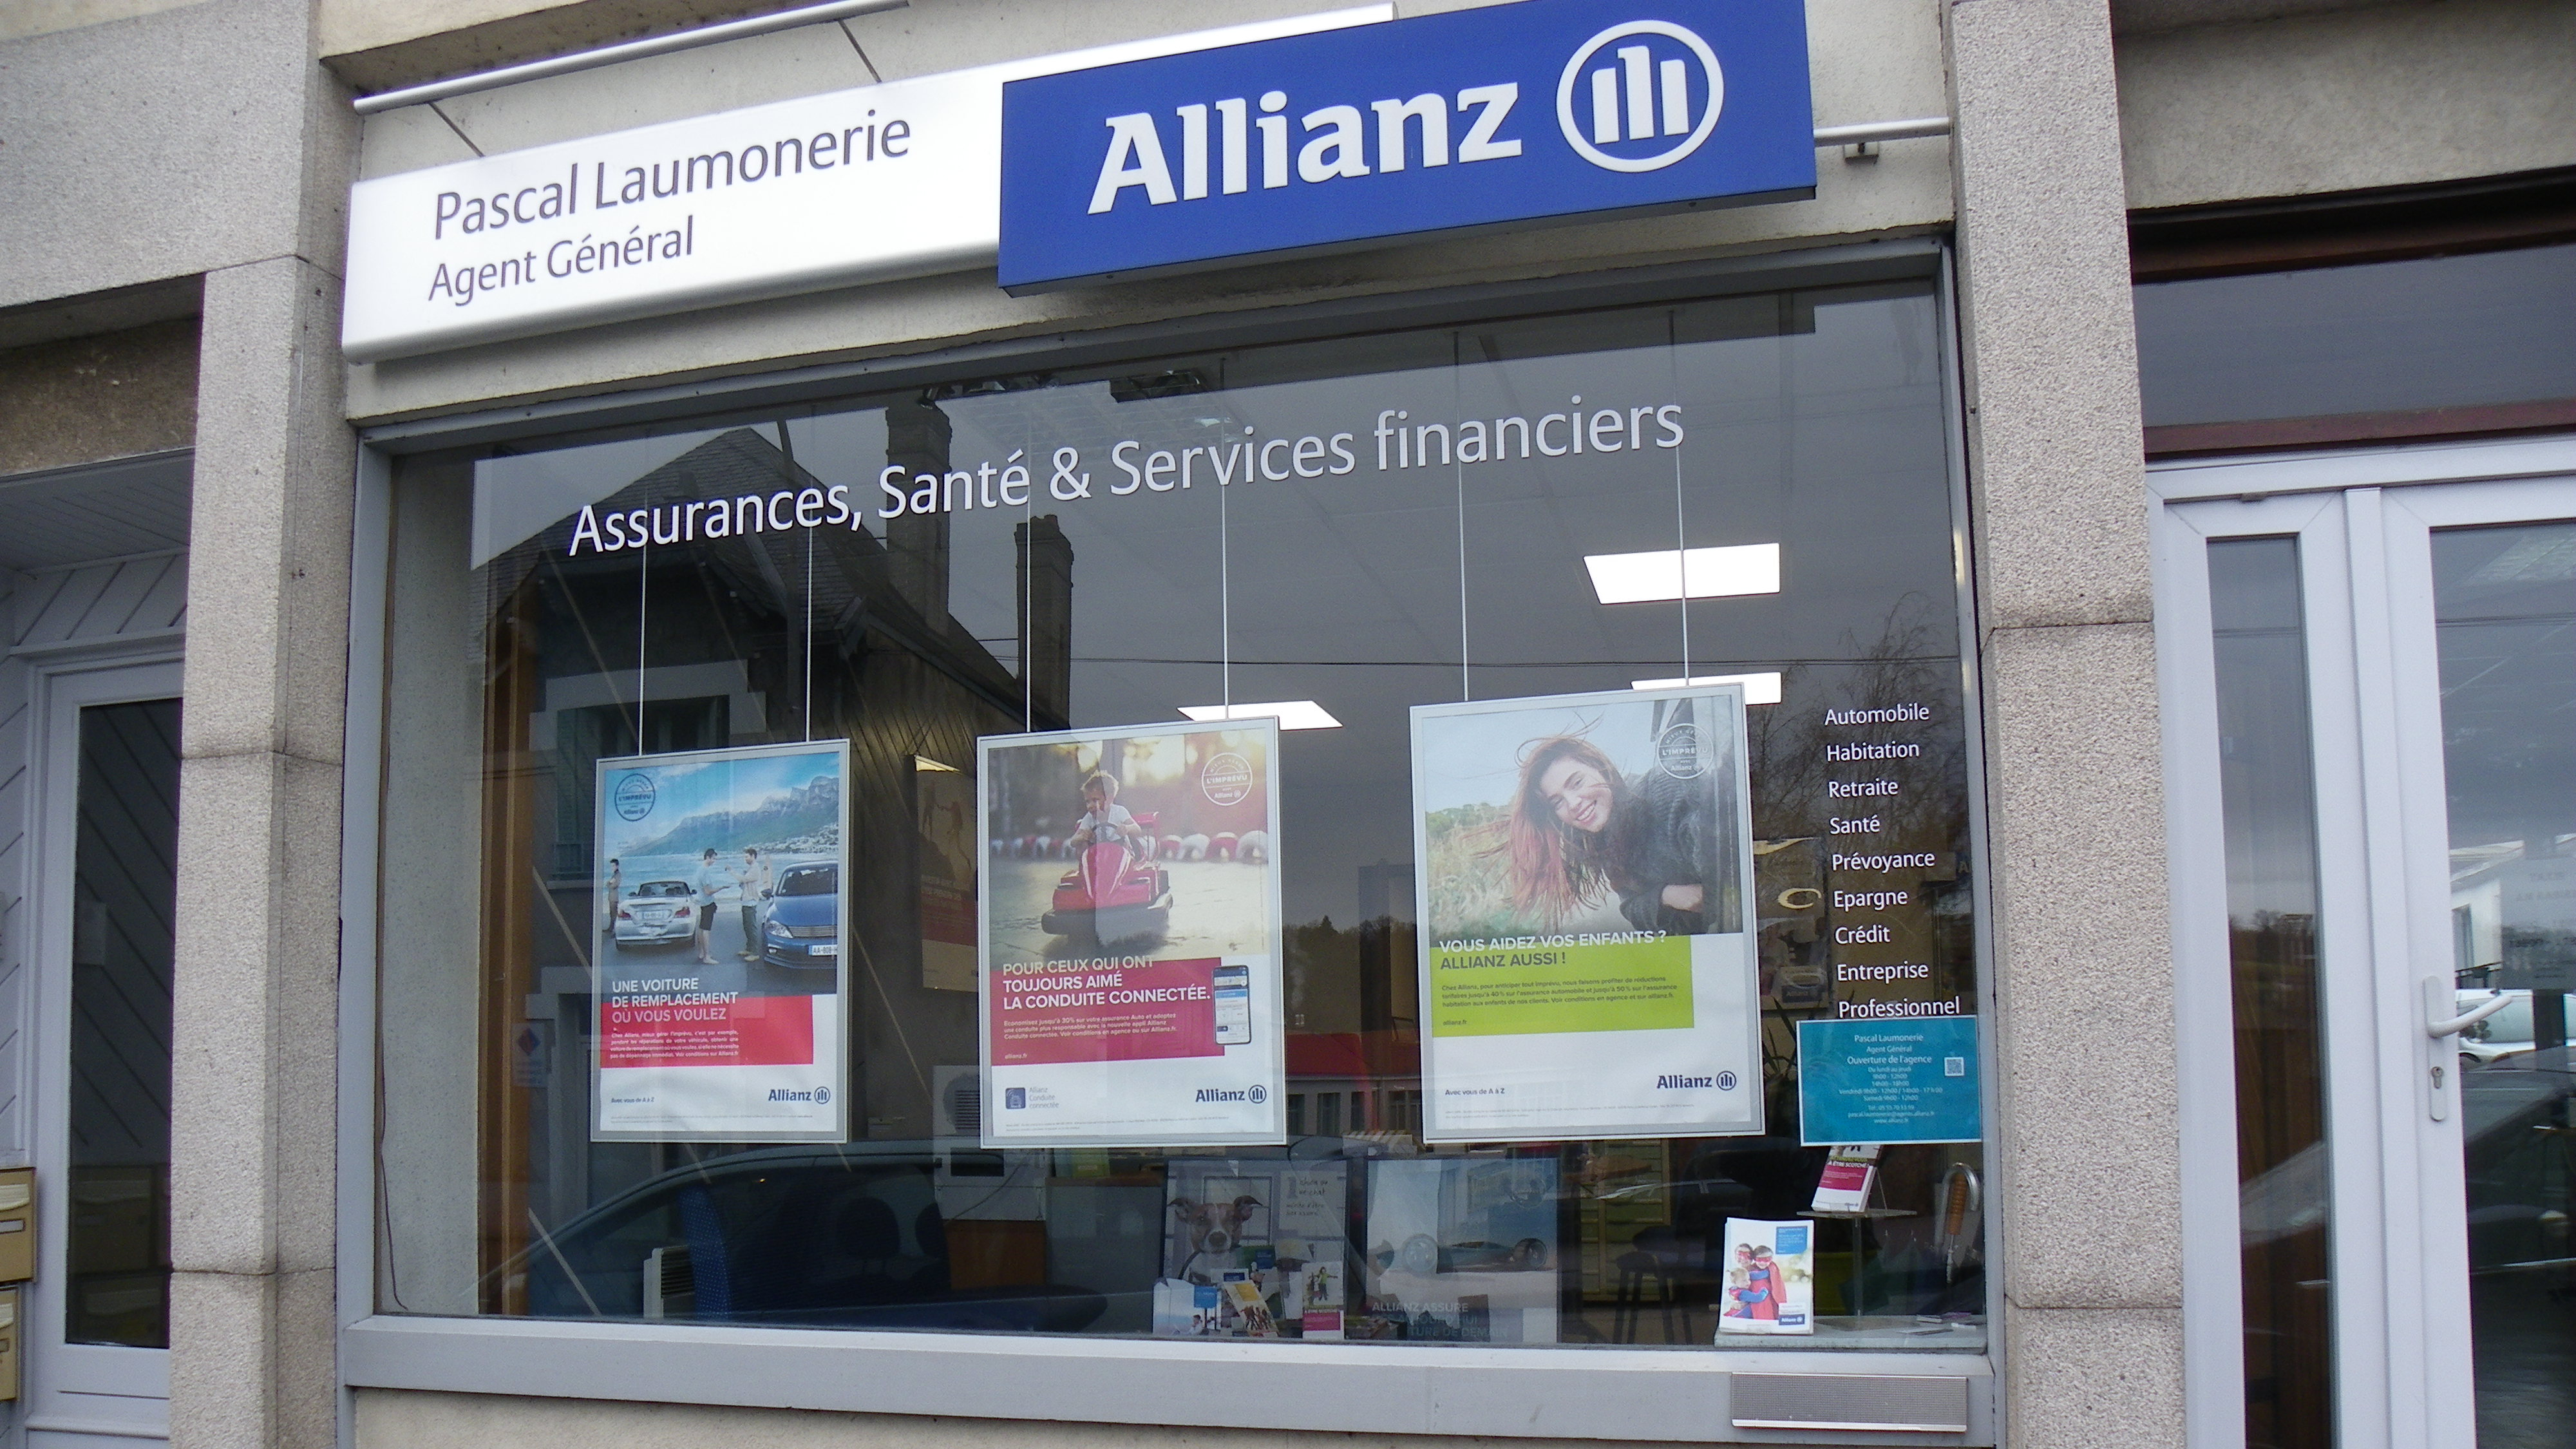 Allianz Limoges porcelaine - Pascal LAUMONERIE